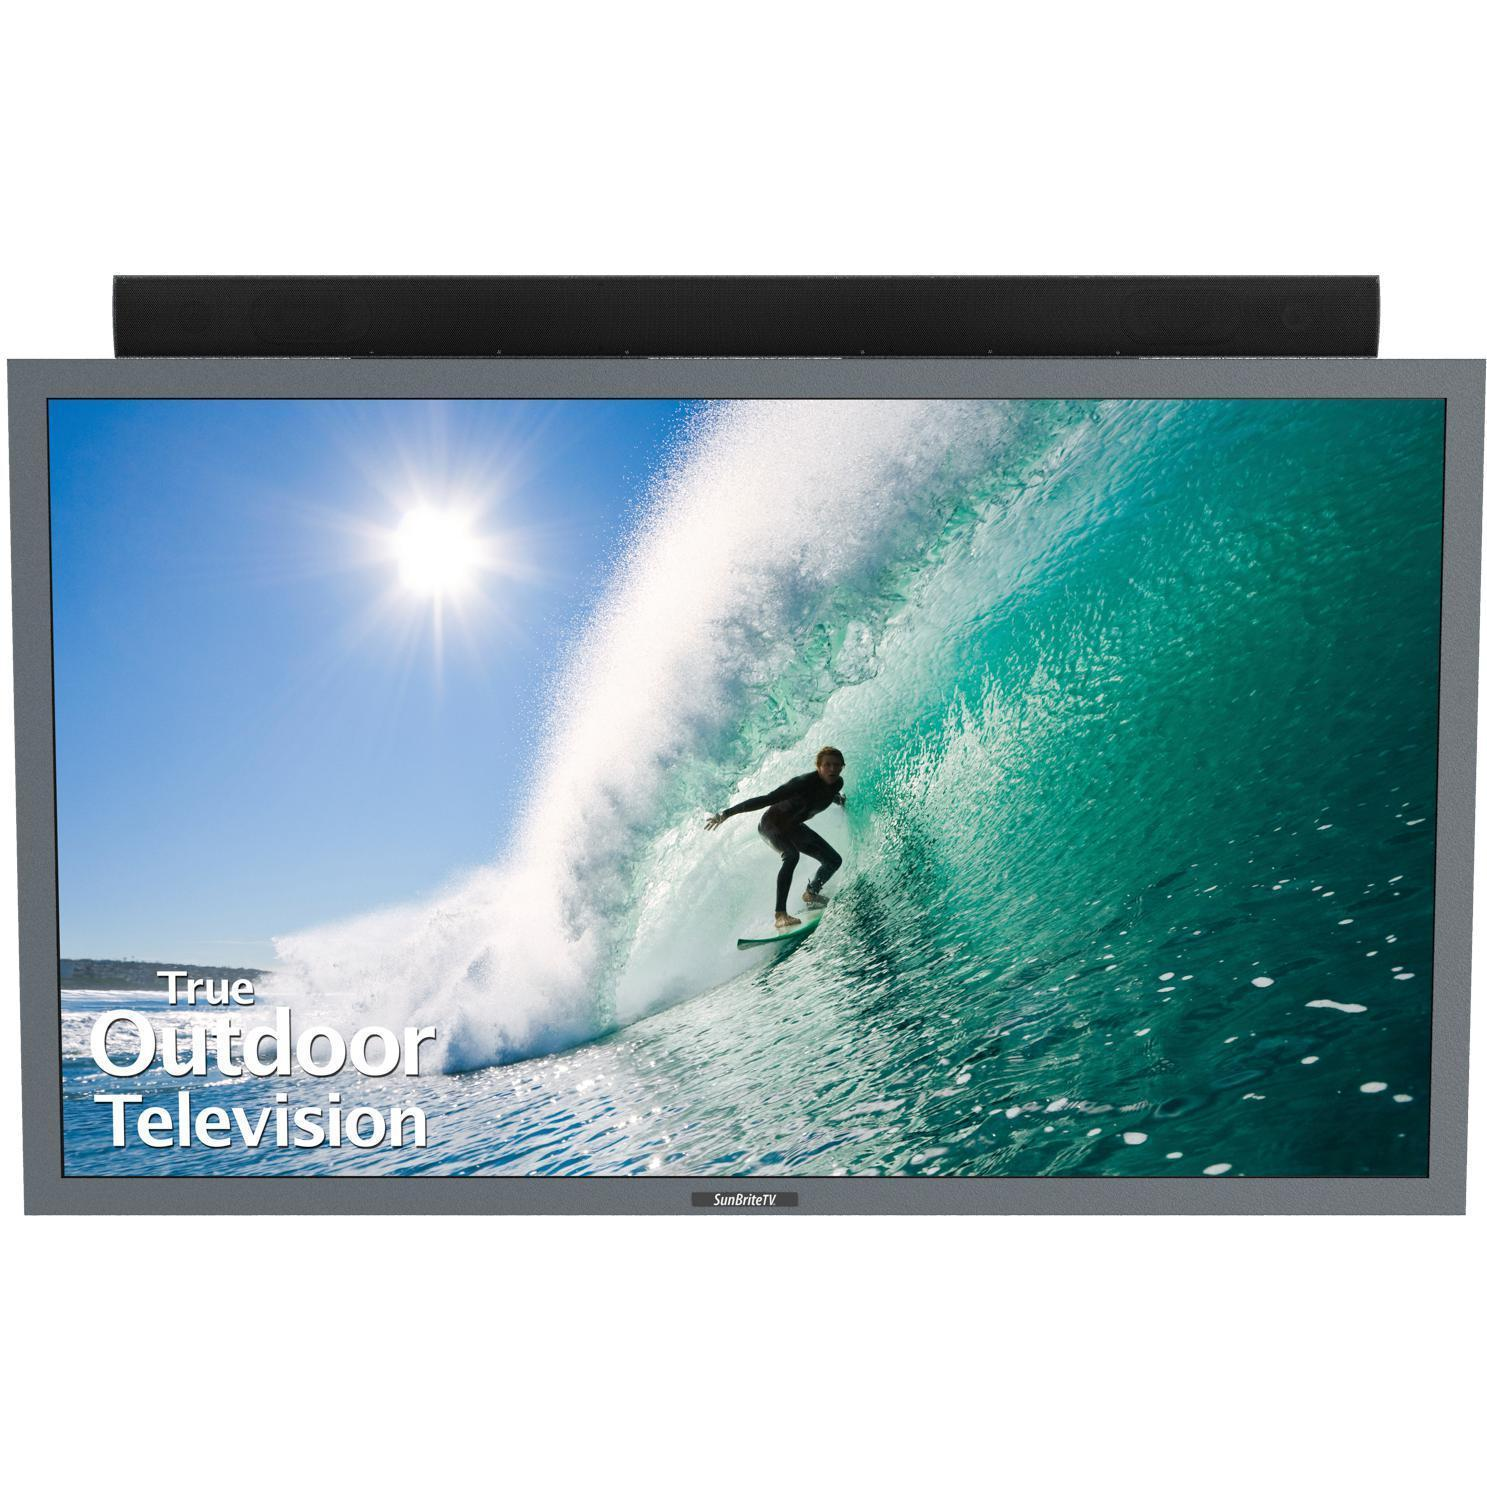 Sunbrite Tv Pro Series 55-Inch 1080p LED Outdoor HDTV - S...